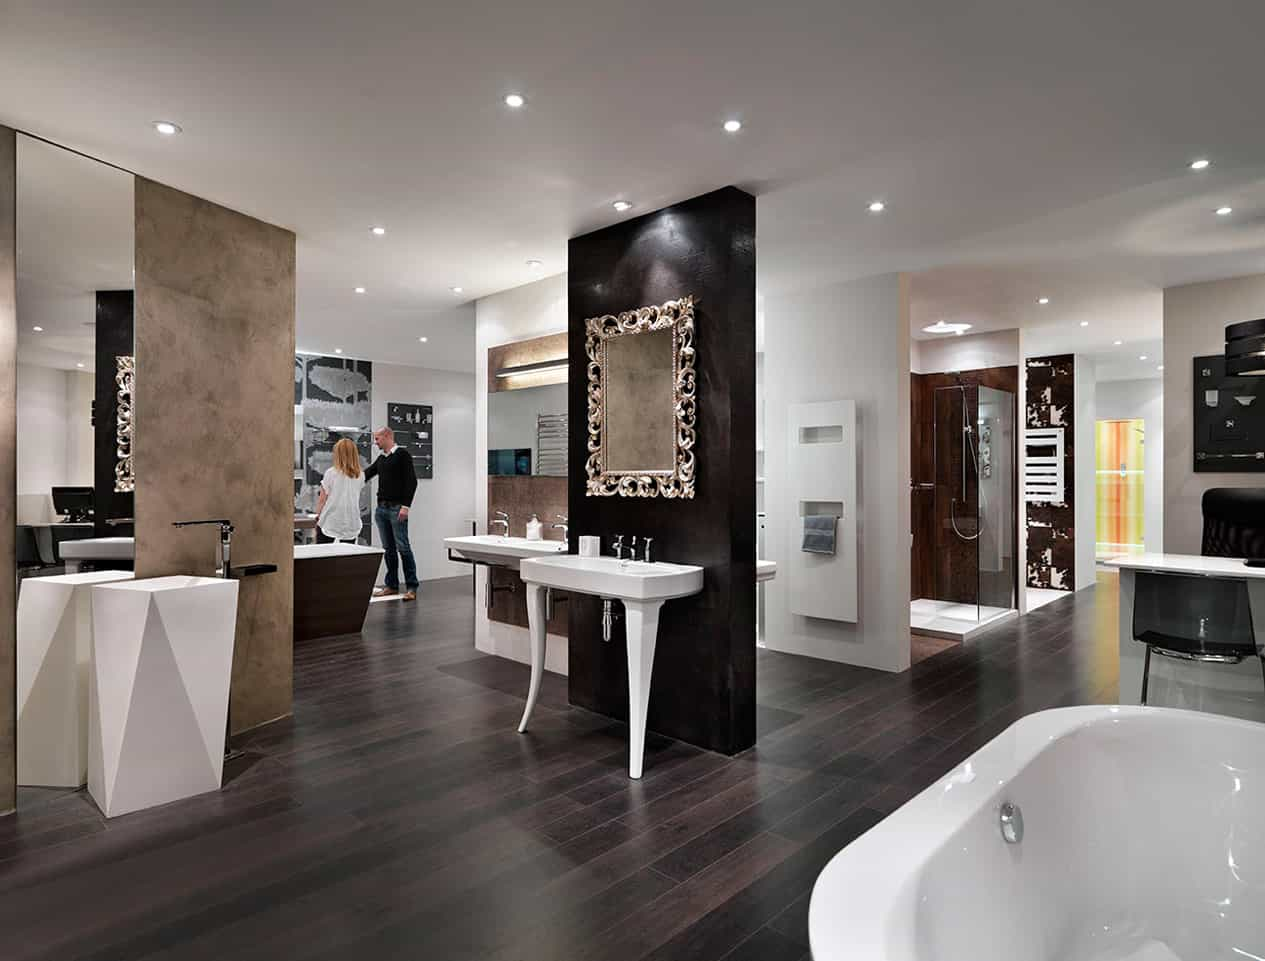 Showrooms discover more with alternative bathrooms london for Bathroom showrooms